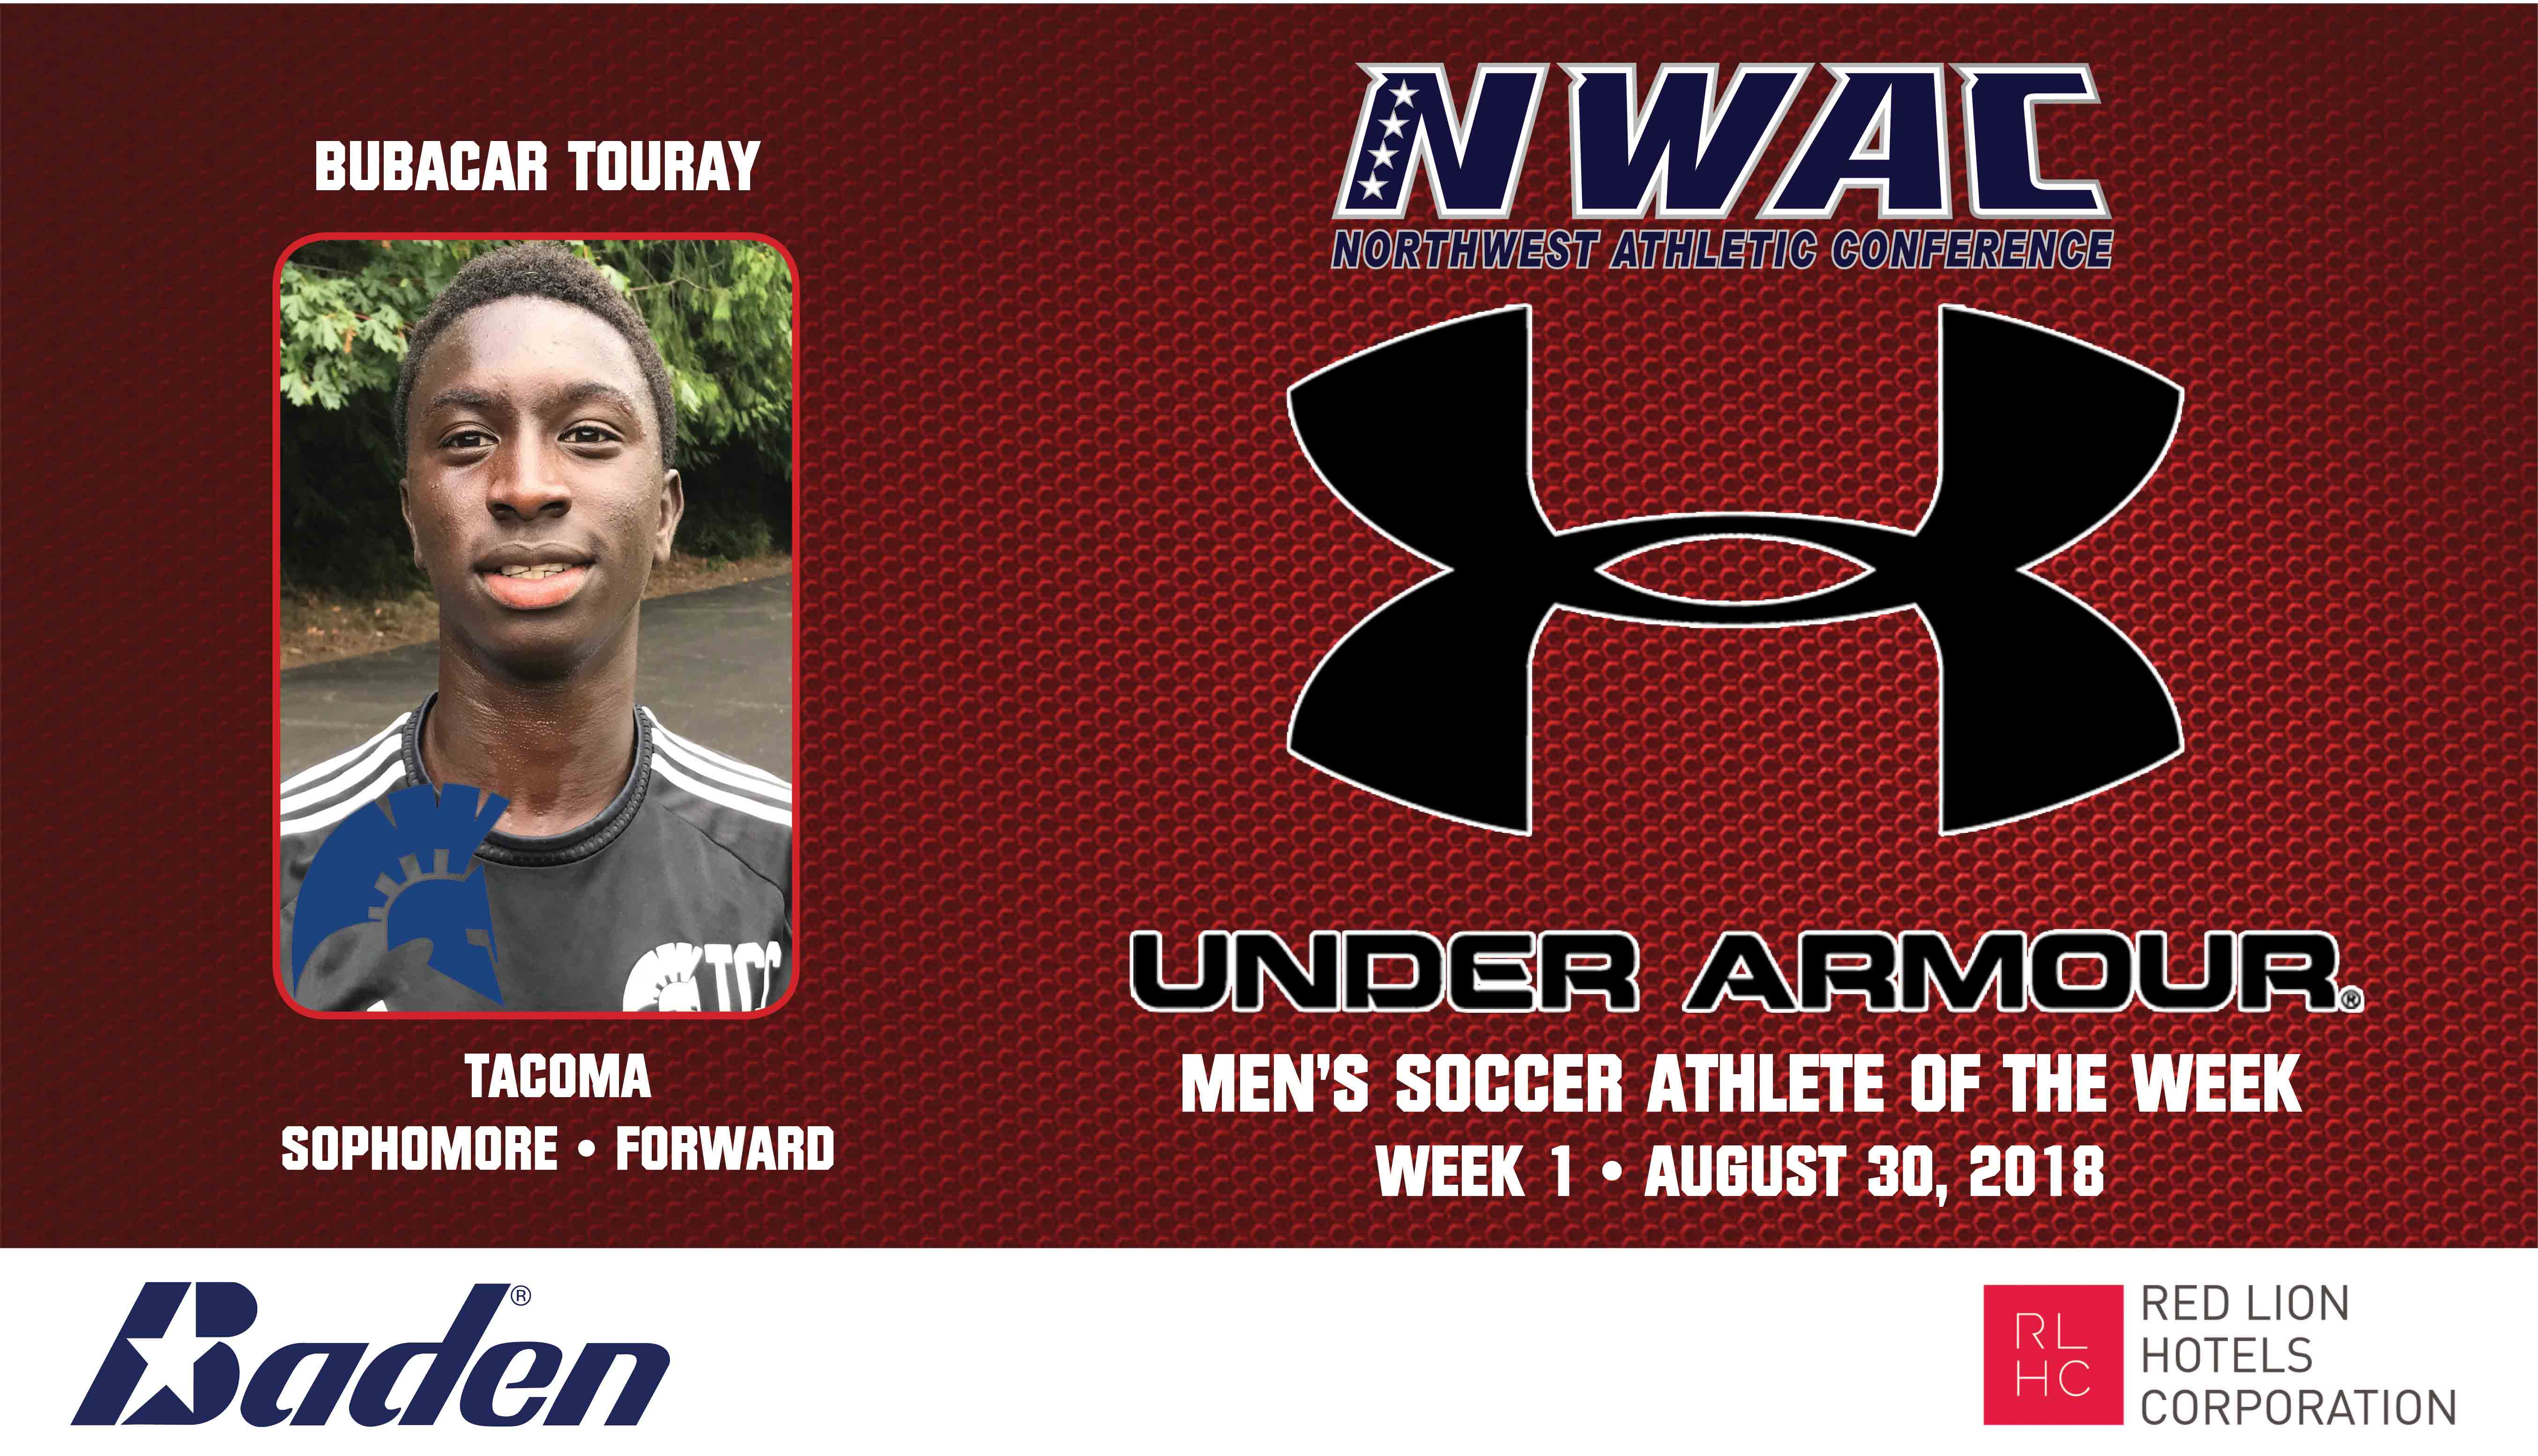 Bubacar Touray Armour Player of the Week graphic